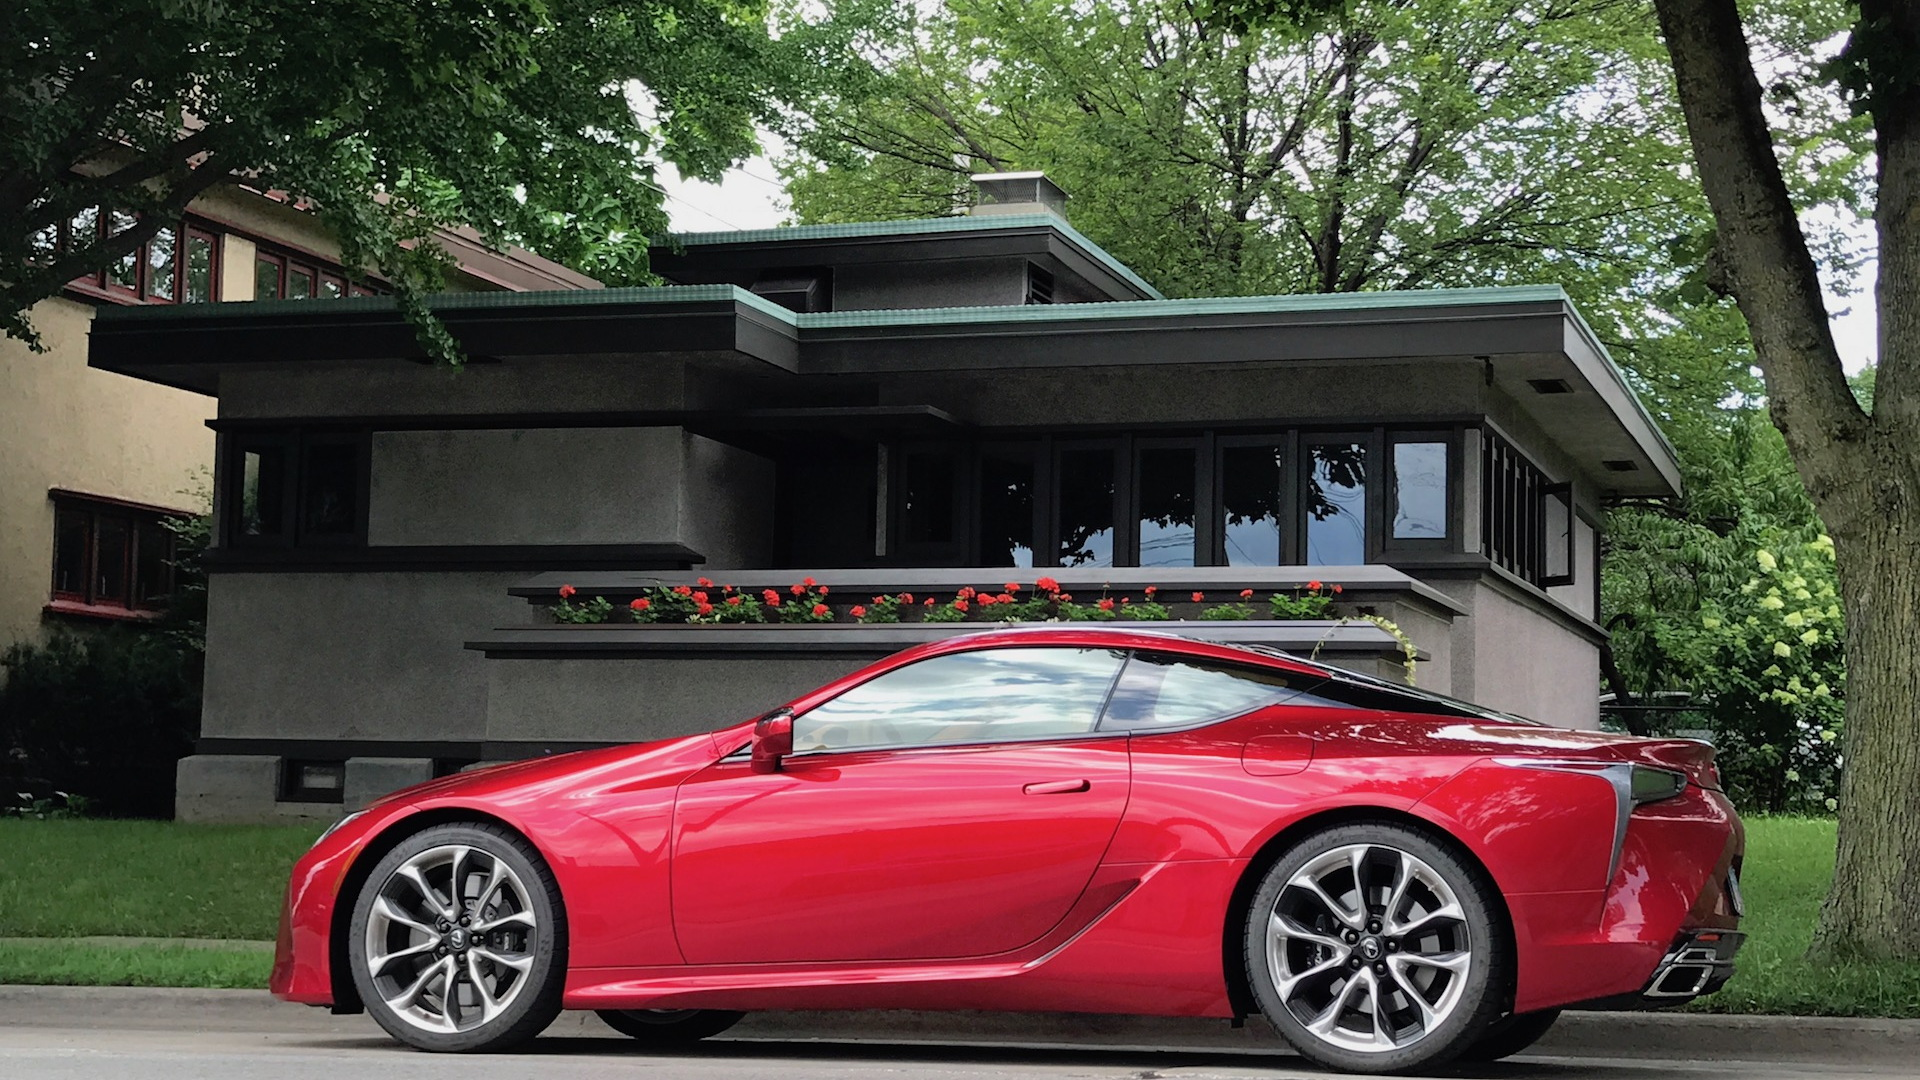 2018 Lexus LC 500 in front of a Burnham System Built Home